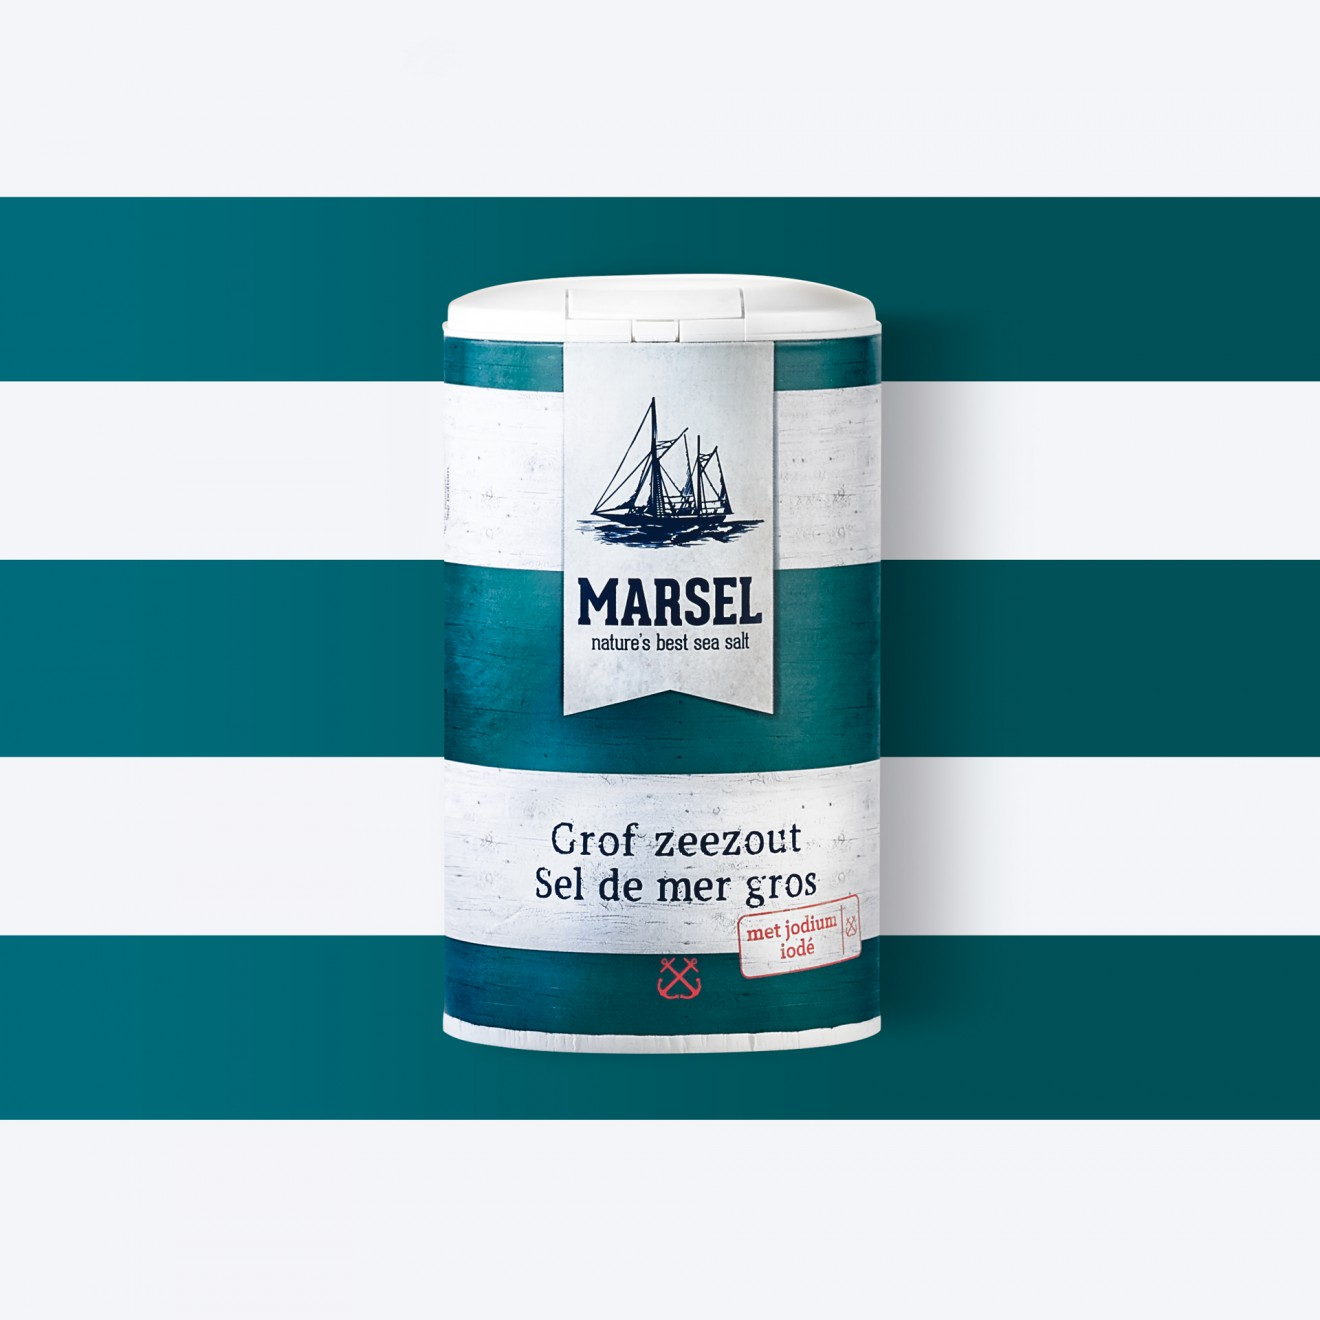 Quatre Mains package design - sea salt, fisher boat, sailor